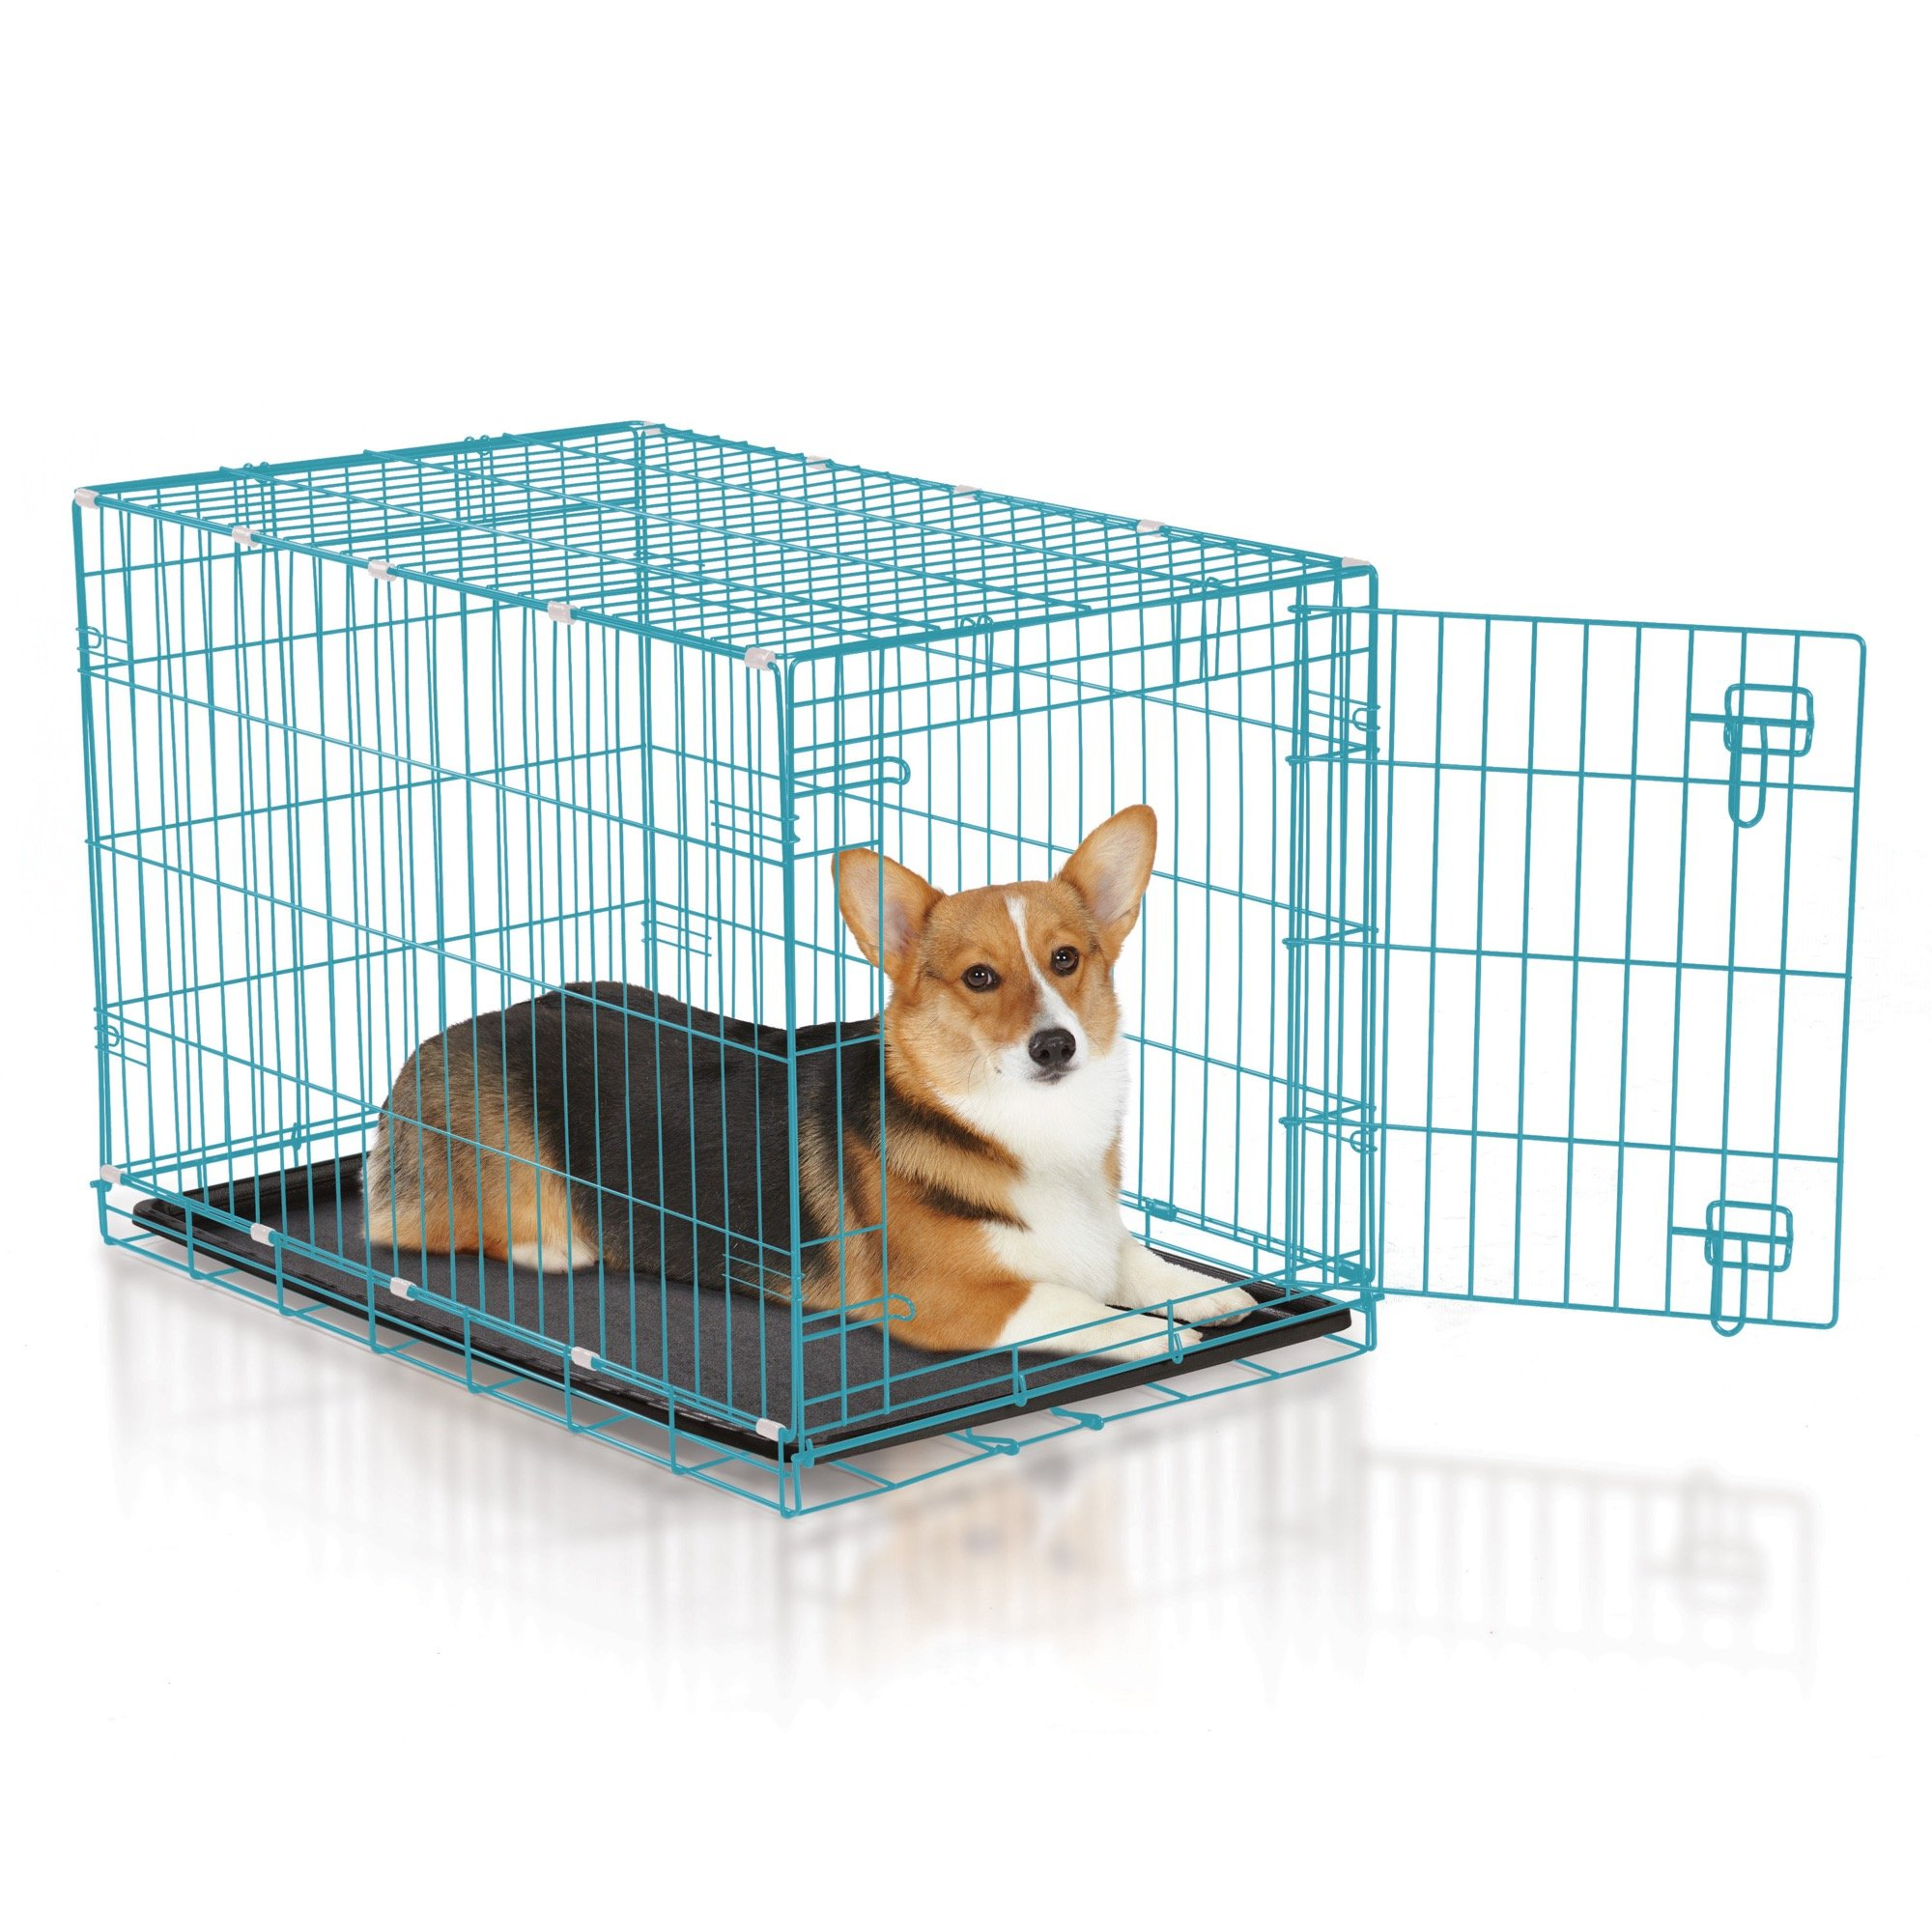 Easy Dual Latching Dog Crate, Medium/Large, Teal by Easy (Image #2)